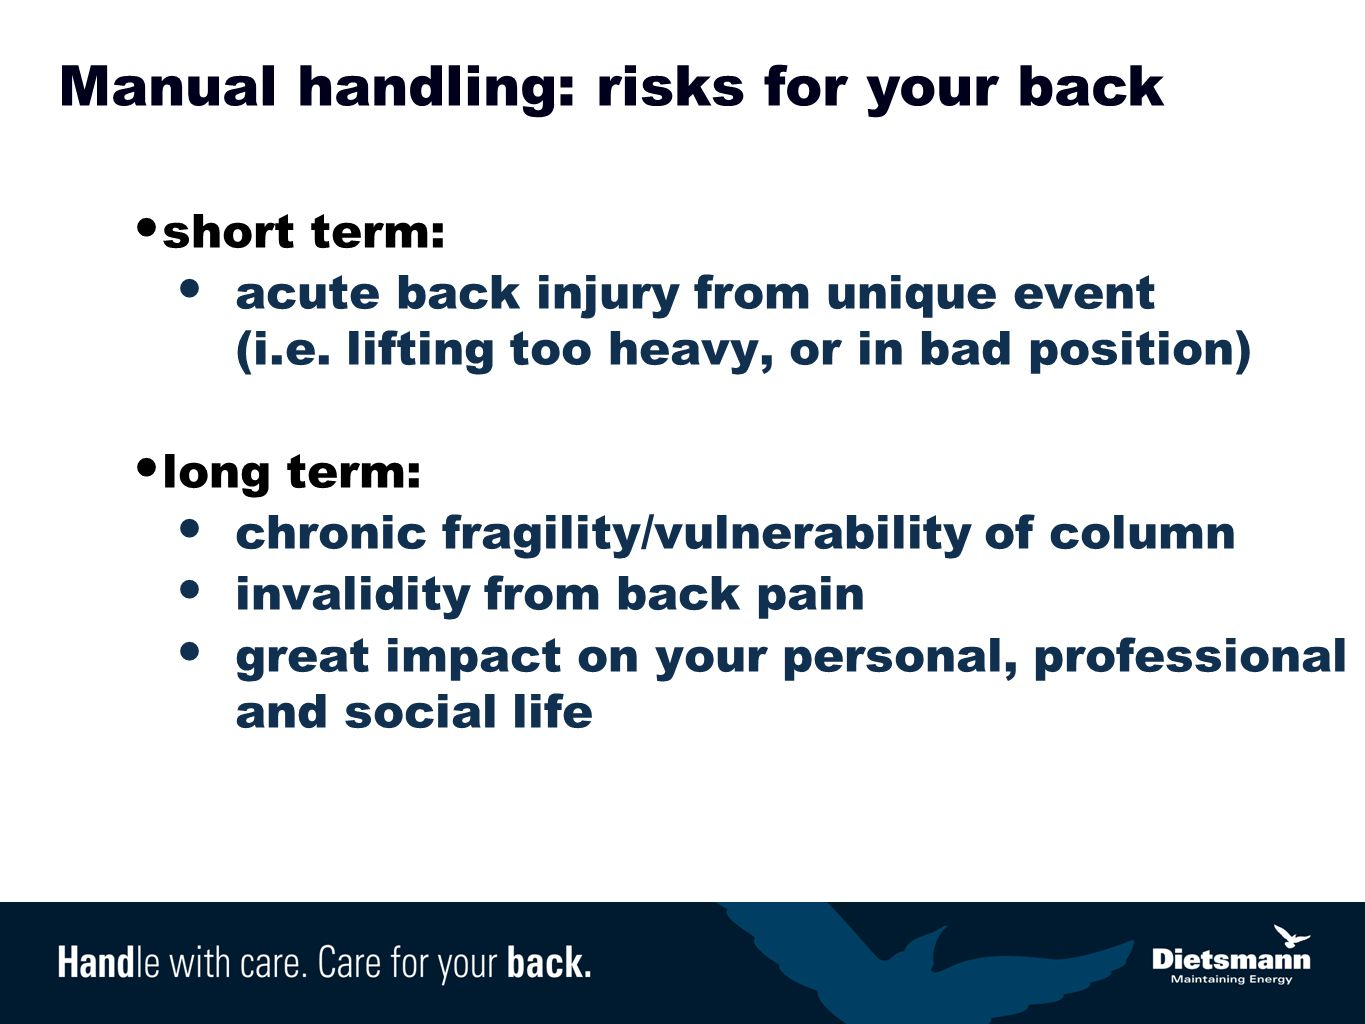 Manual handling: risks for your back